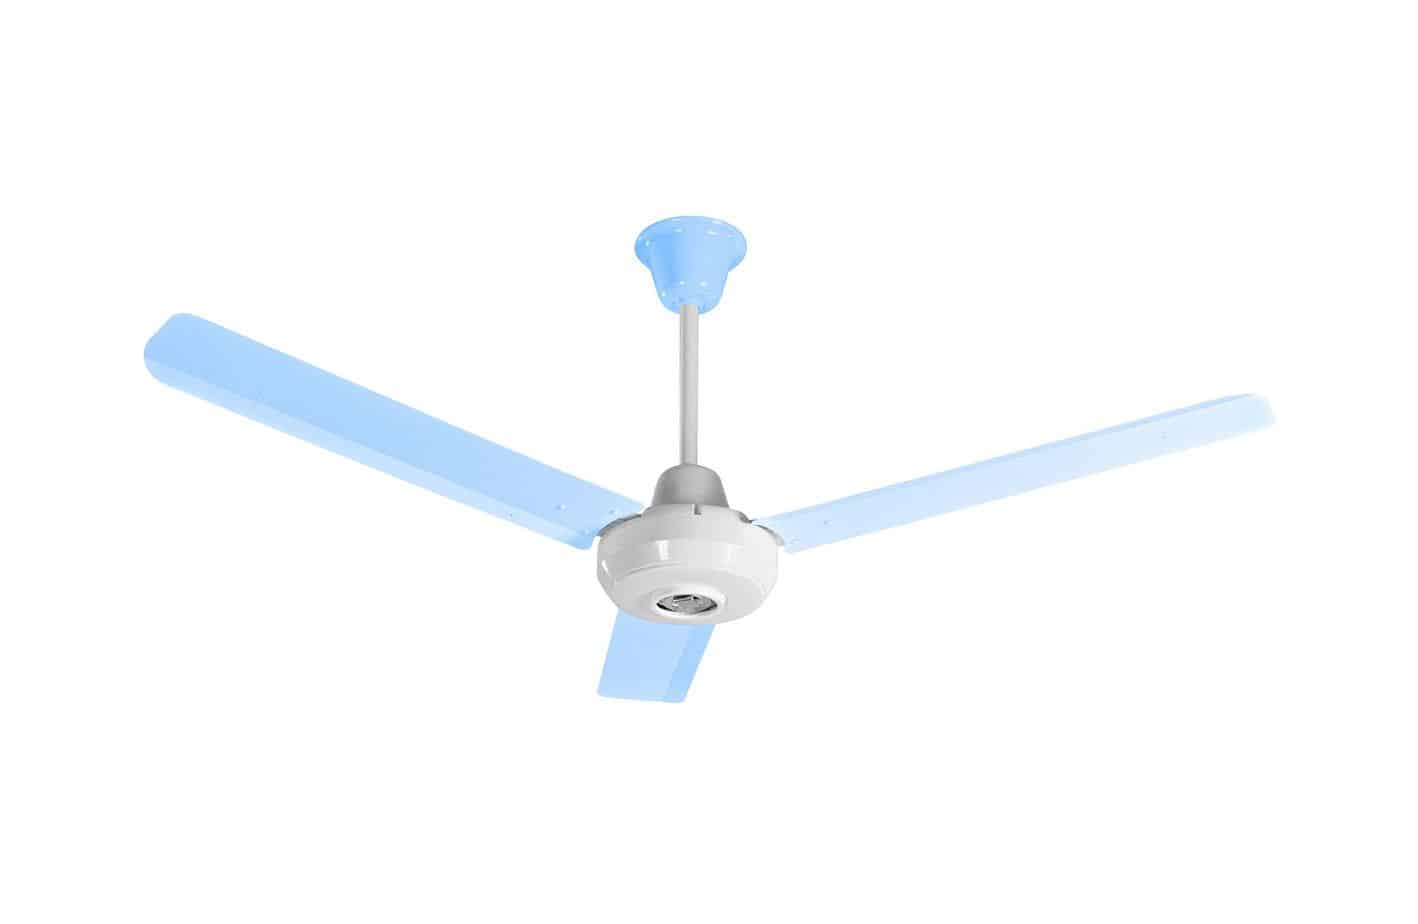 Things To Consider When Buying The Best Crompton Fans - Buying Guide